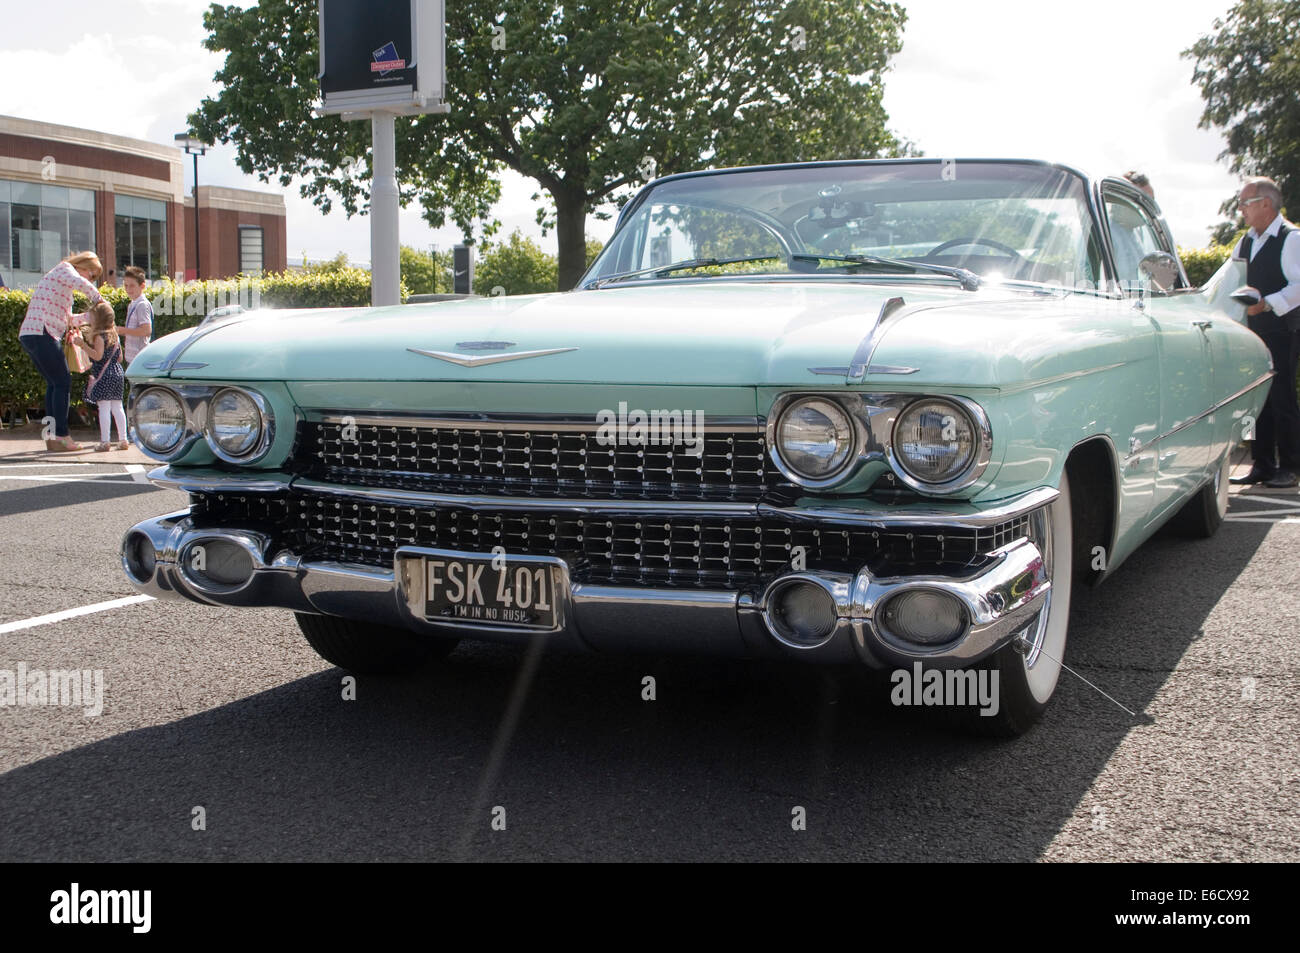 1959 cadillac caddy 59 50's fifties nineteen nineteenfifties car cars american us classic coupe de ville fin - Stock Image